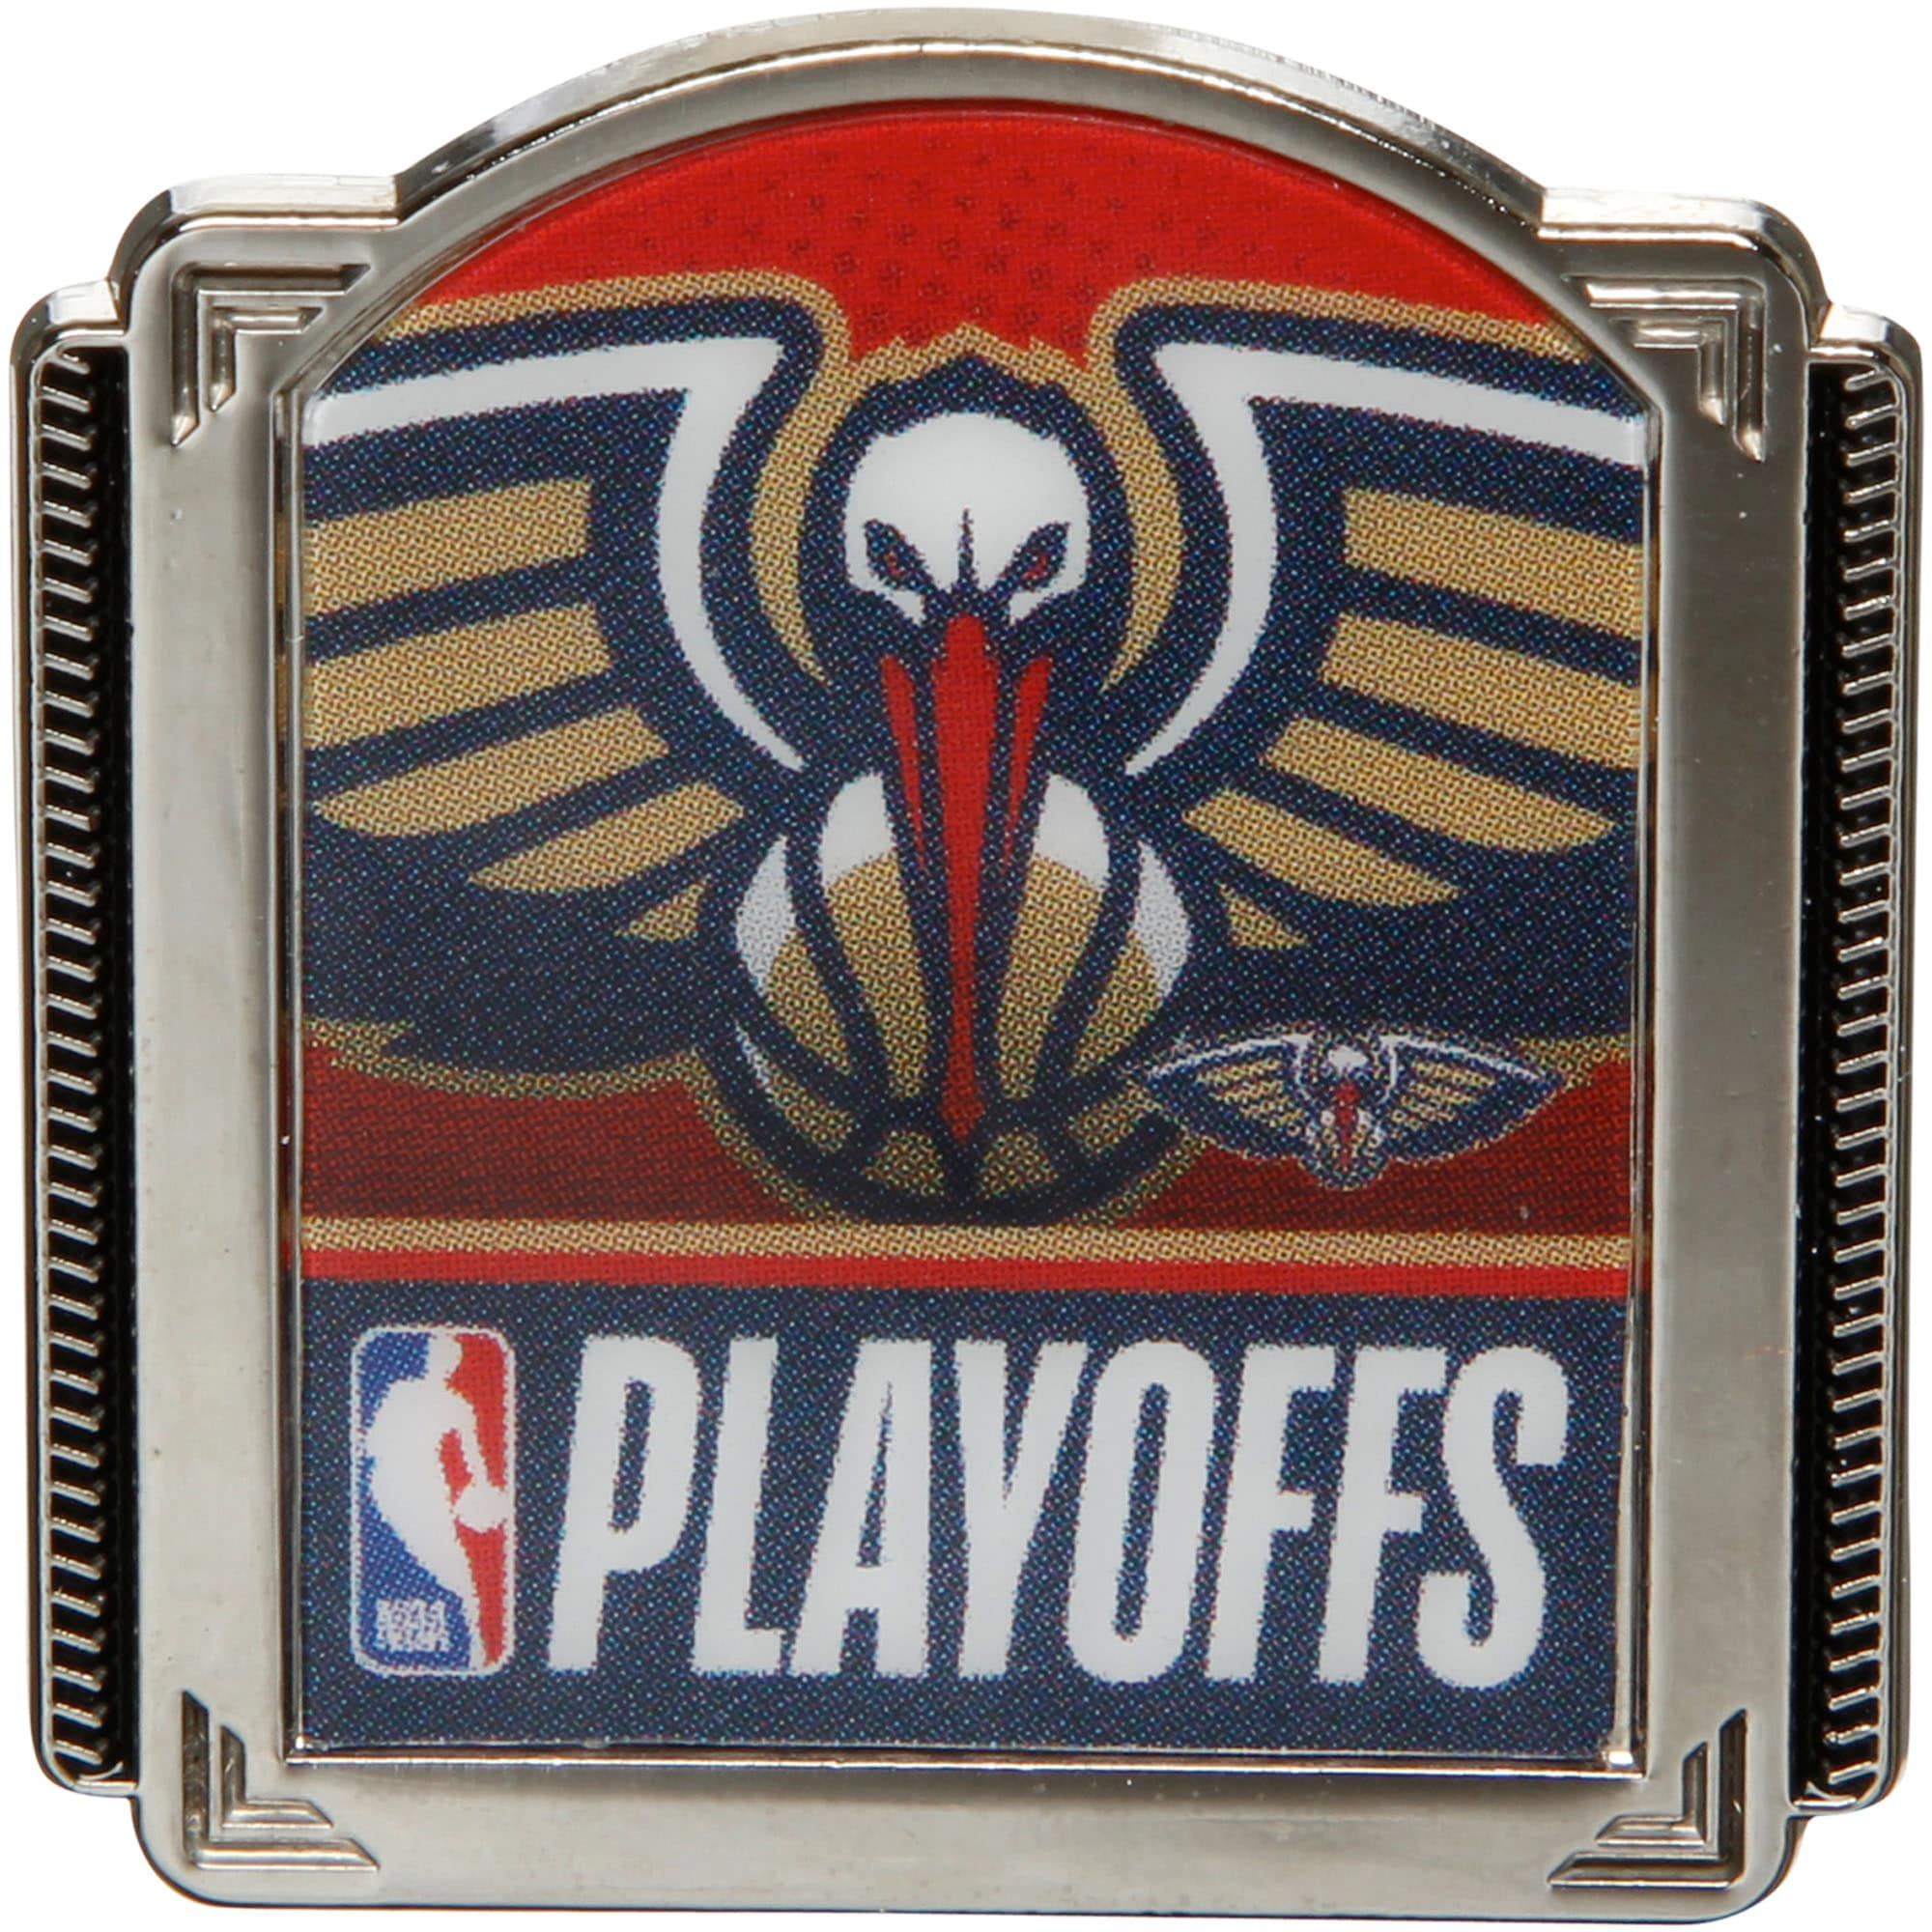 New Orleans Pelicans WinCraft 2018 Playoff Pin